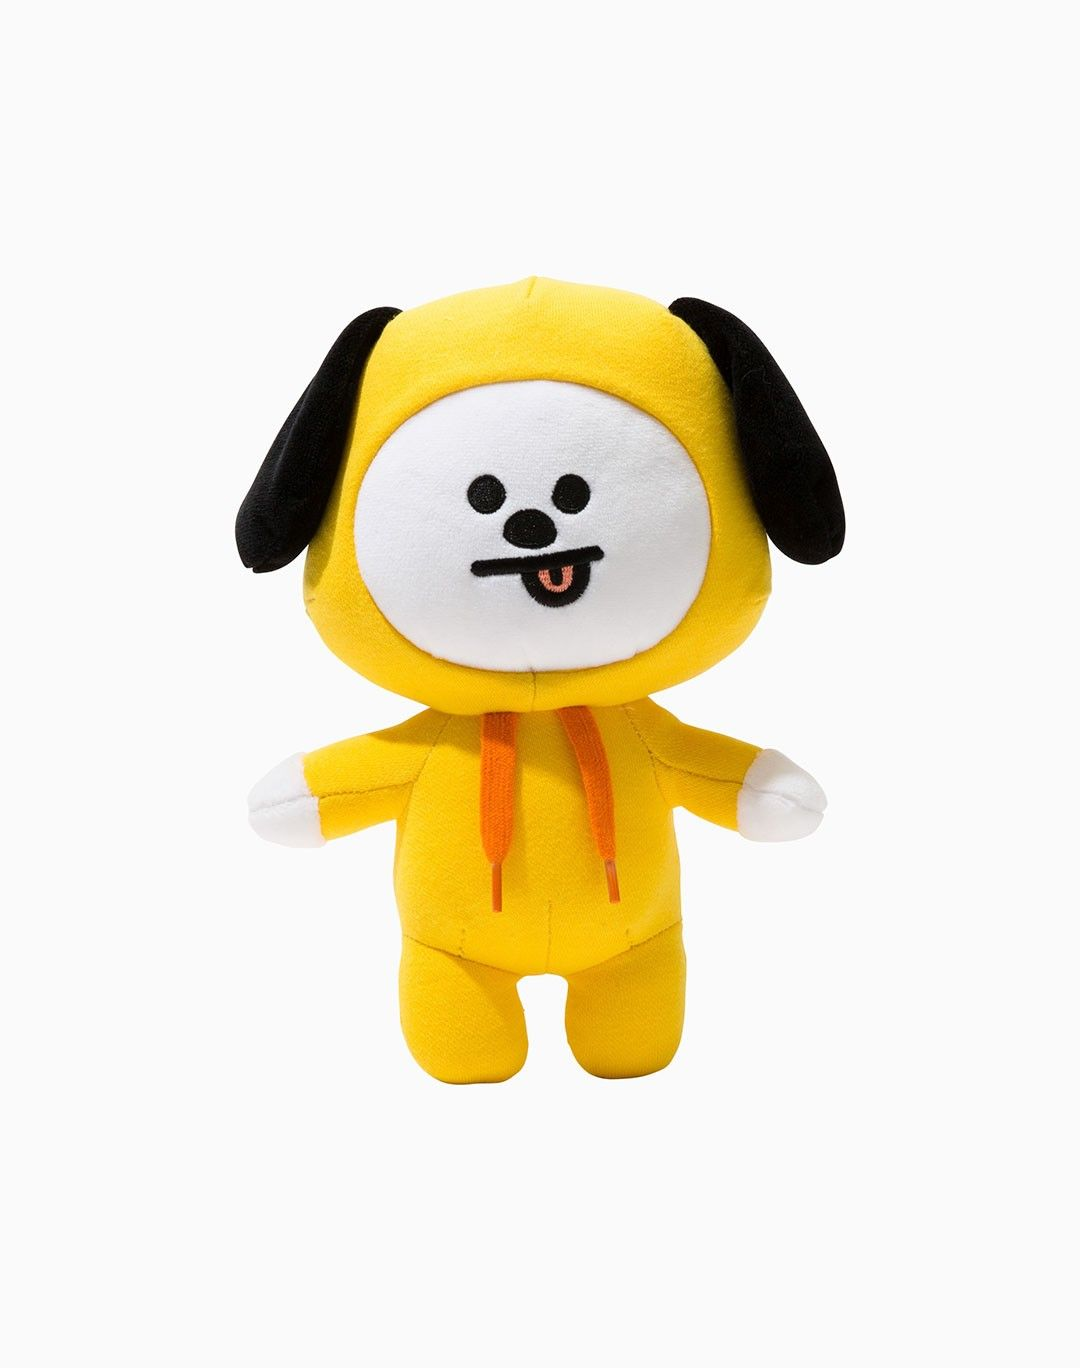 Costume Props New Kpop Bangtan Boys Bts Bt21 Vapp Same Pillow Plush Cushion Warm Bolster Q Back Soft Stuffed Doll 25 Cm Tata Cooky Chimmy Strong Packing Novelty & Special Use